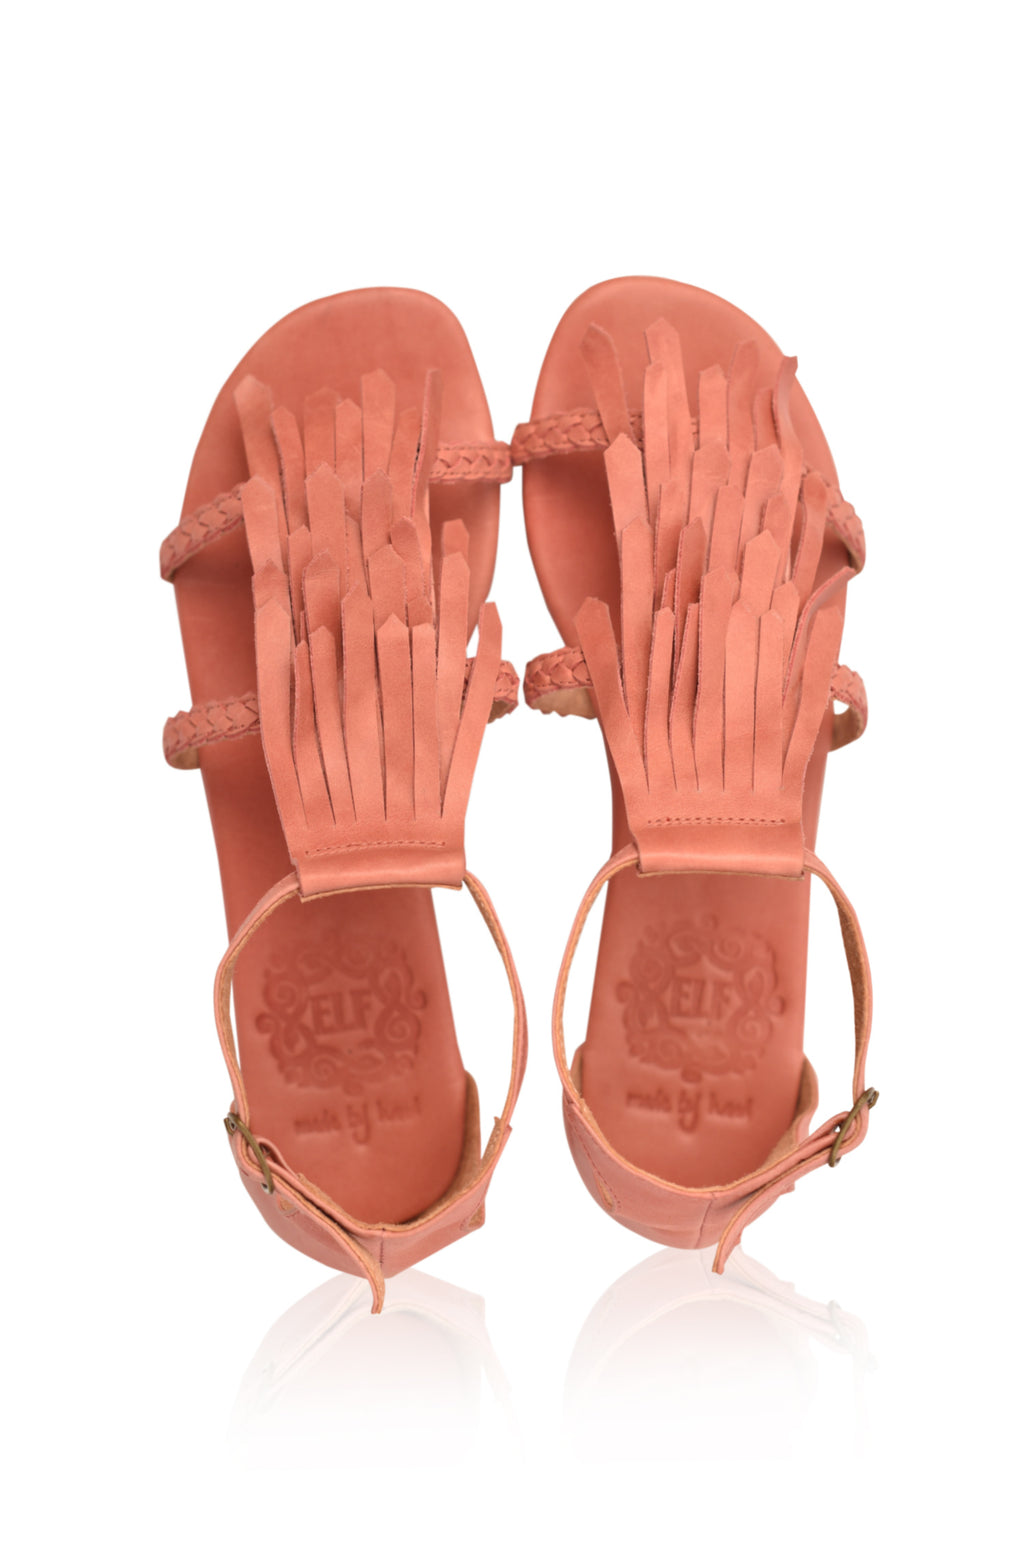 Summer lush Strappy Sandals (Sz. 7 & 9.5)